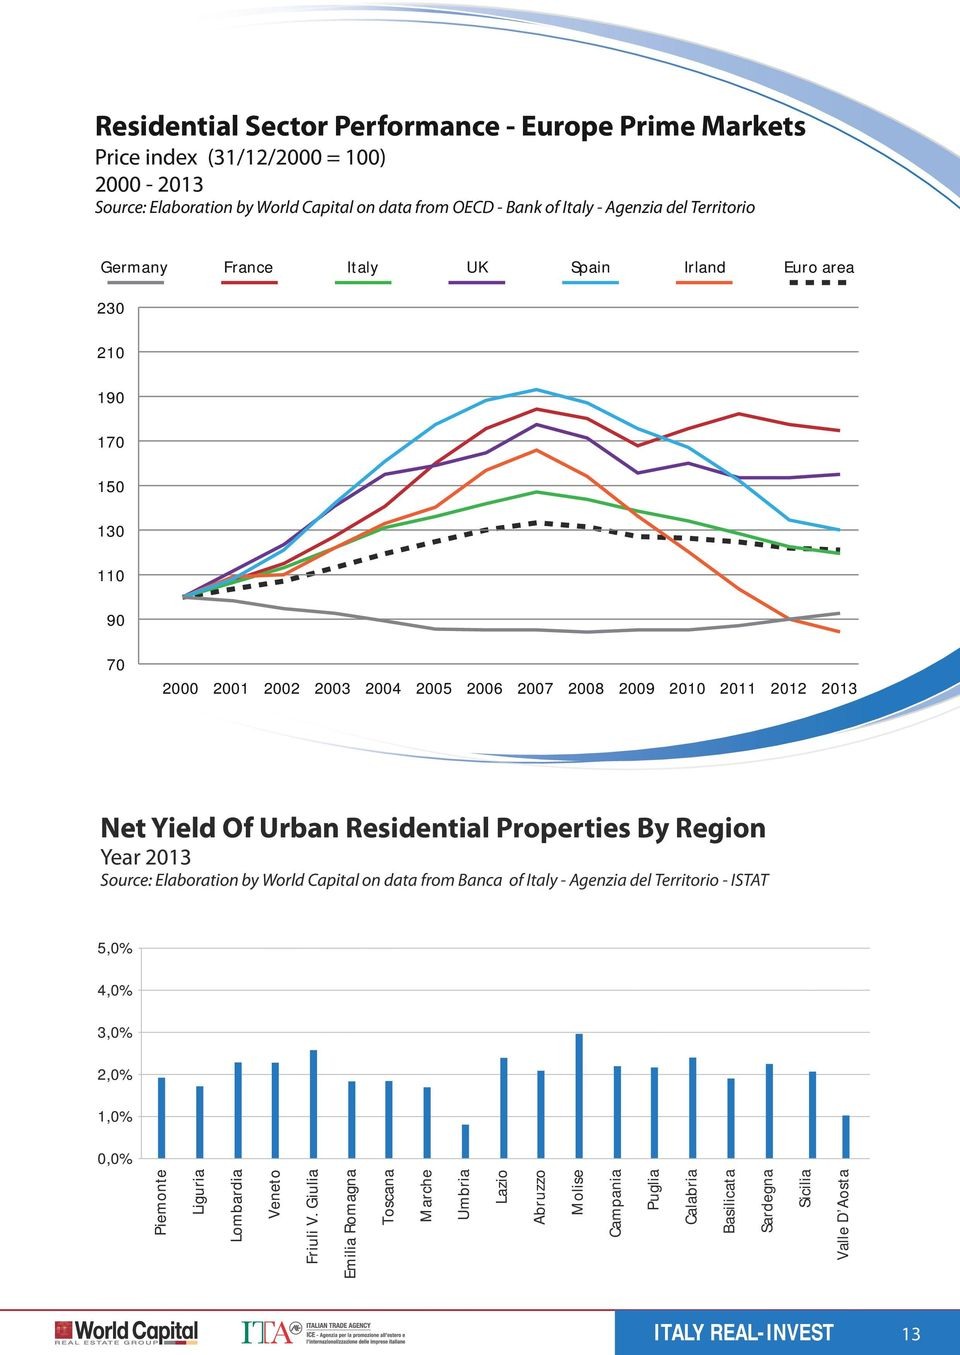 Of Urban Residential Properties By Region Year 2013 Source: Elaboration by World Capital on data from Banca of Italy - Agenzia del Territorio - ISTAT 5,0% 4,0% 3,0% 2,0% 1,0%